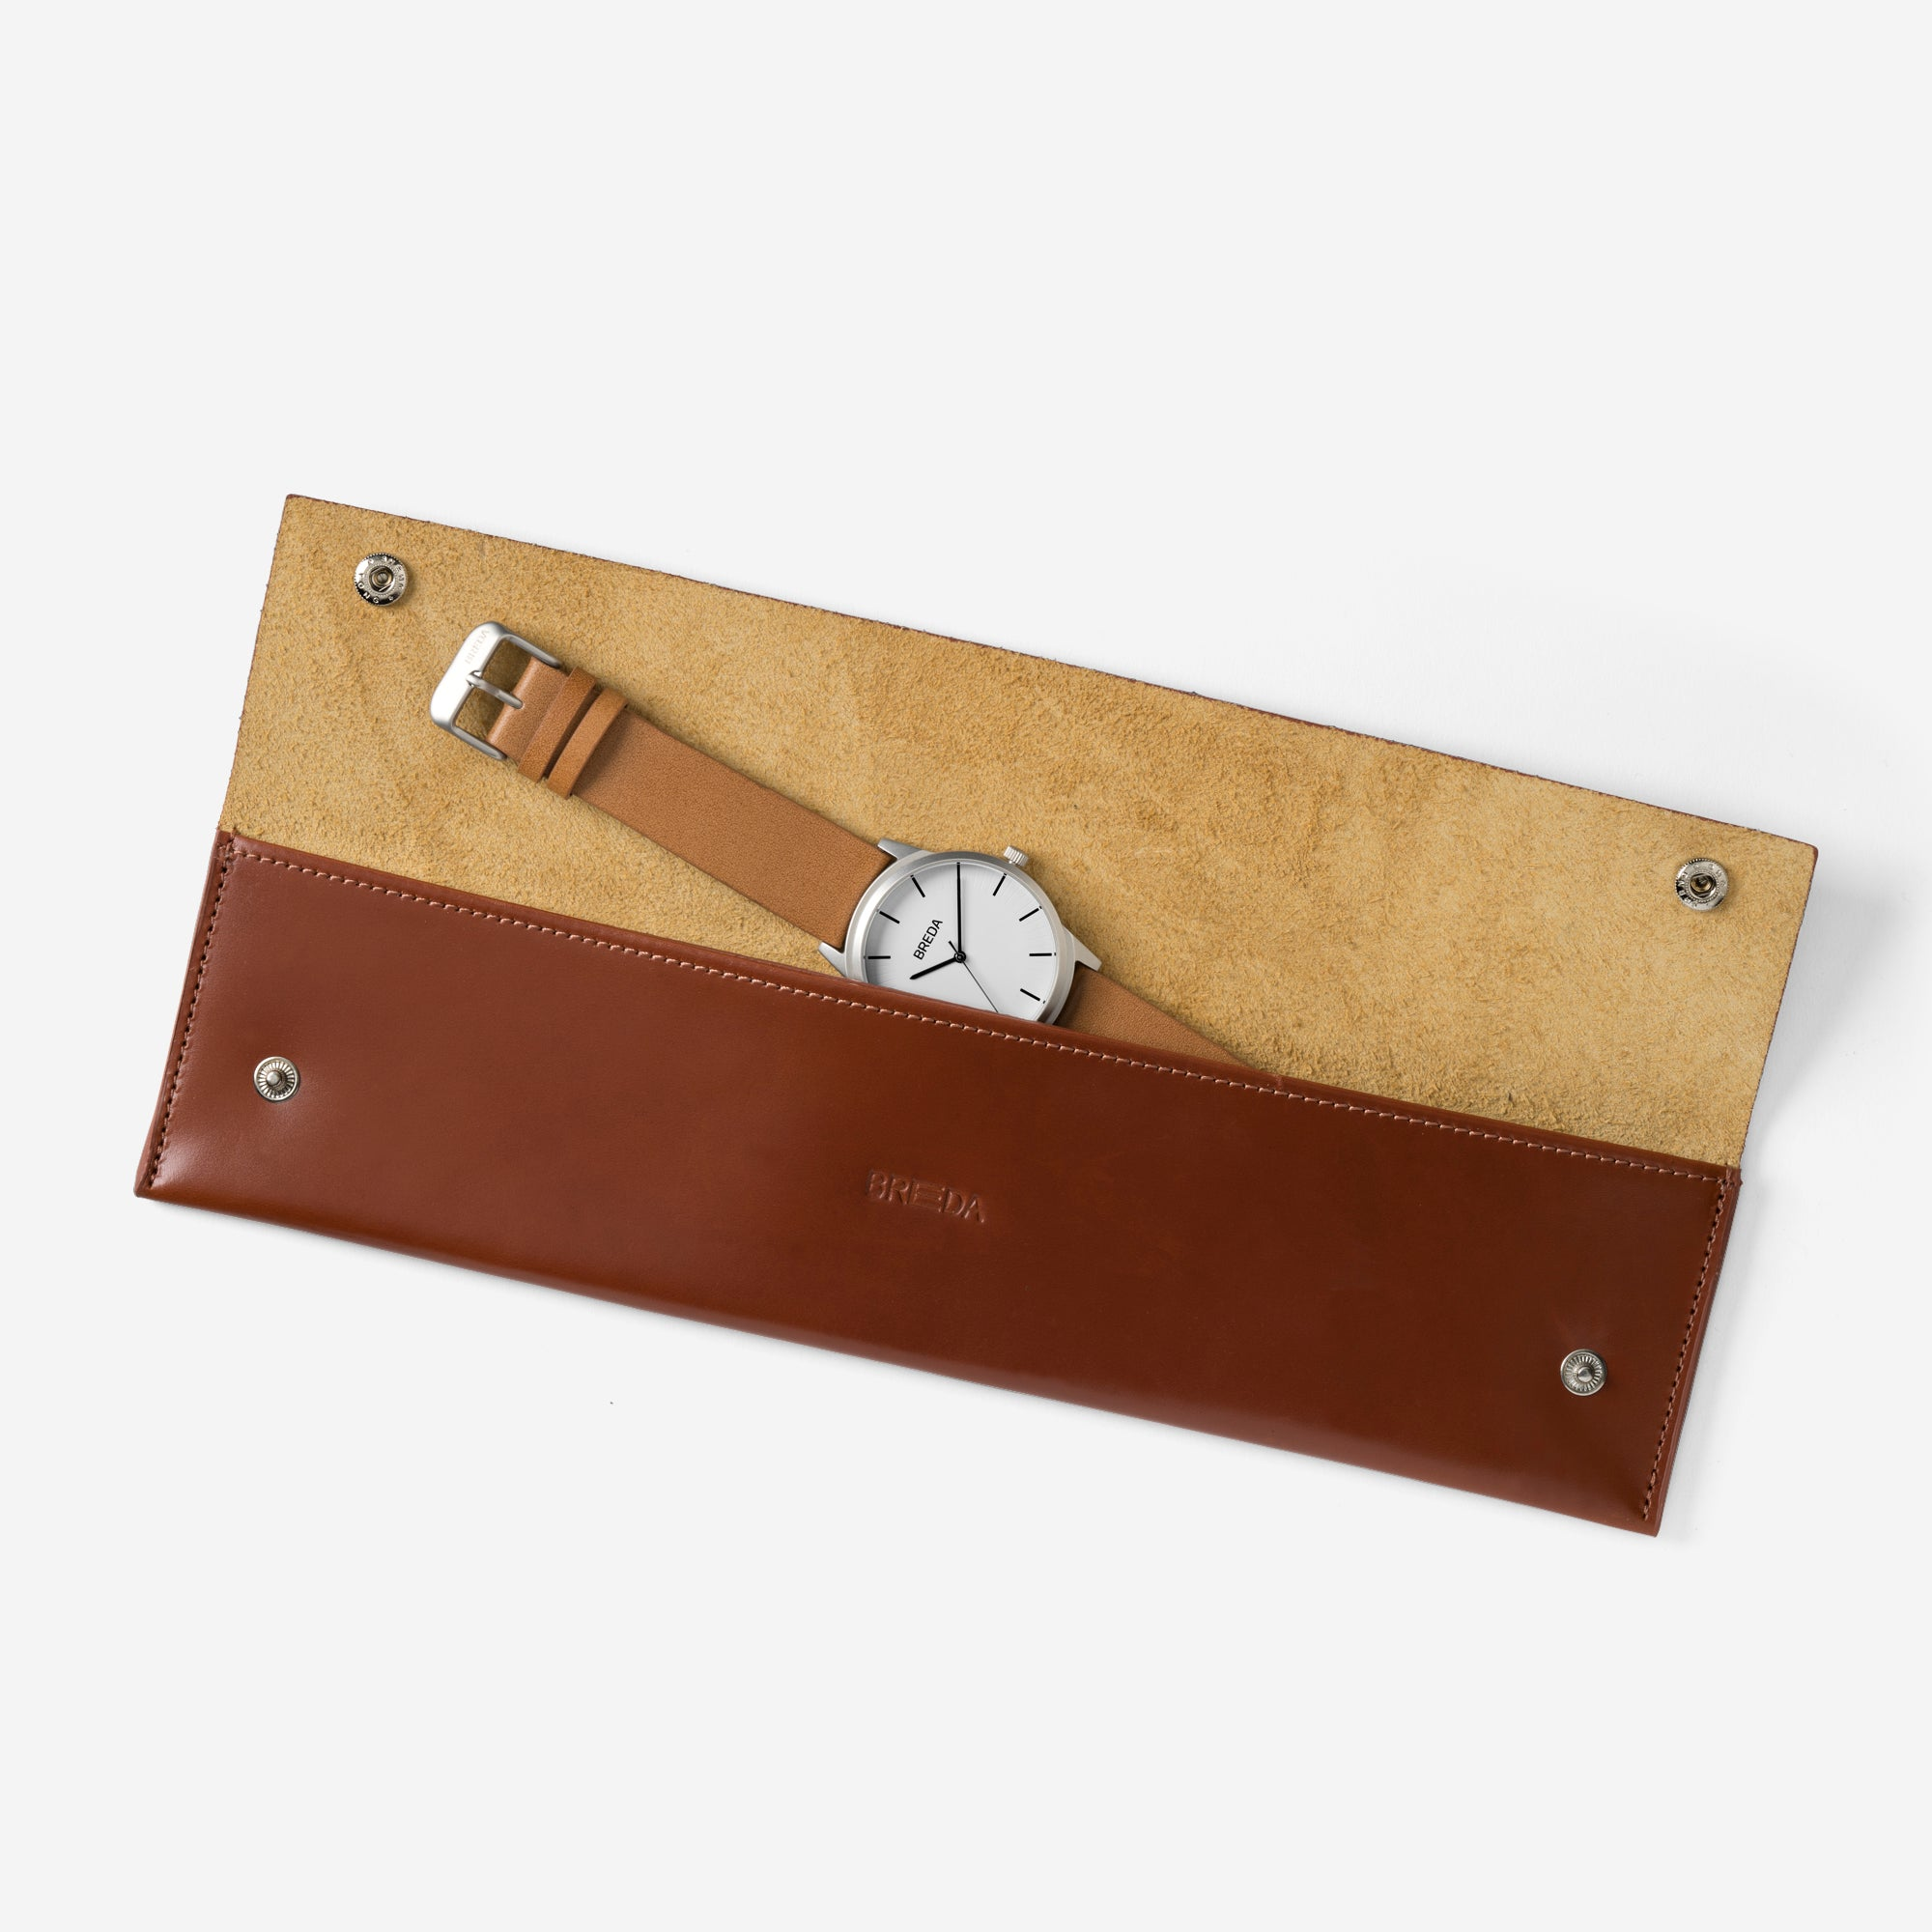 //cdn.shopify.com/s/files/1/0879/6650/products/breda-j1014-brown-leather-travel-pouch-watch-angle-2_1024x1024.jpg?v=1512152952